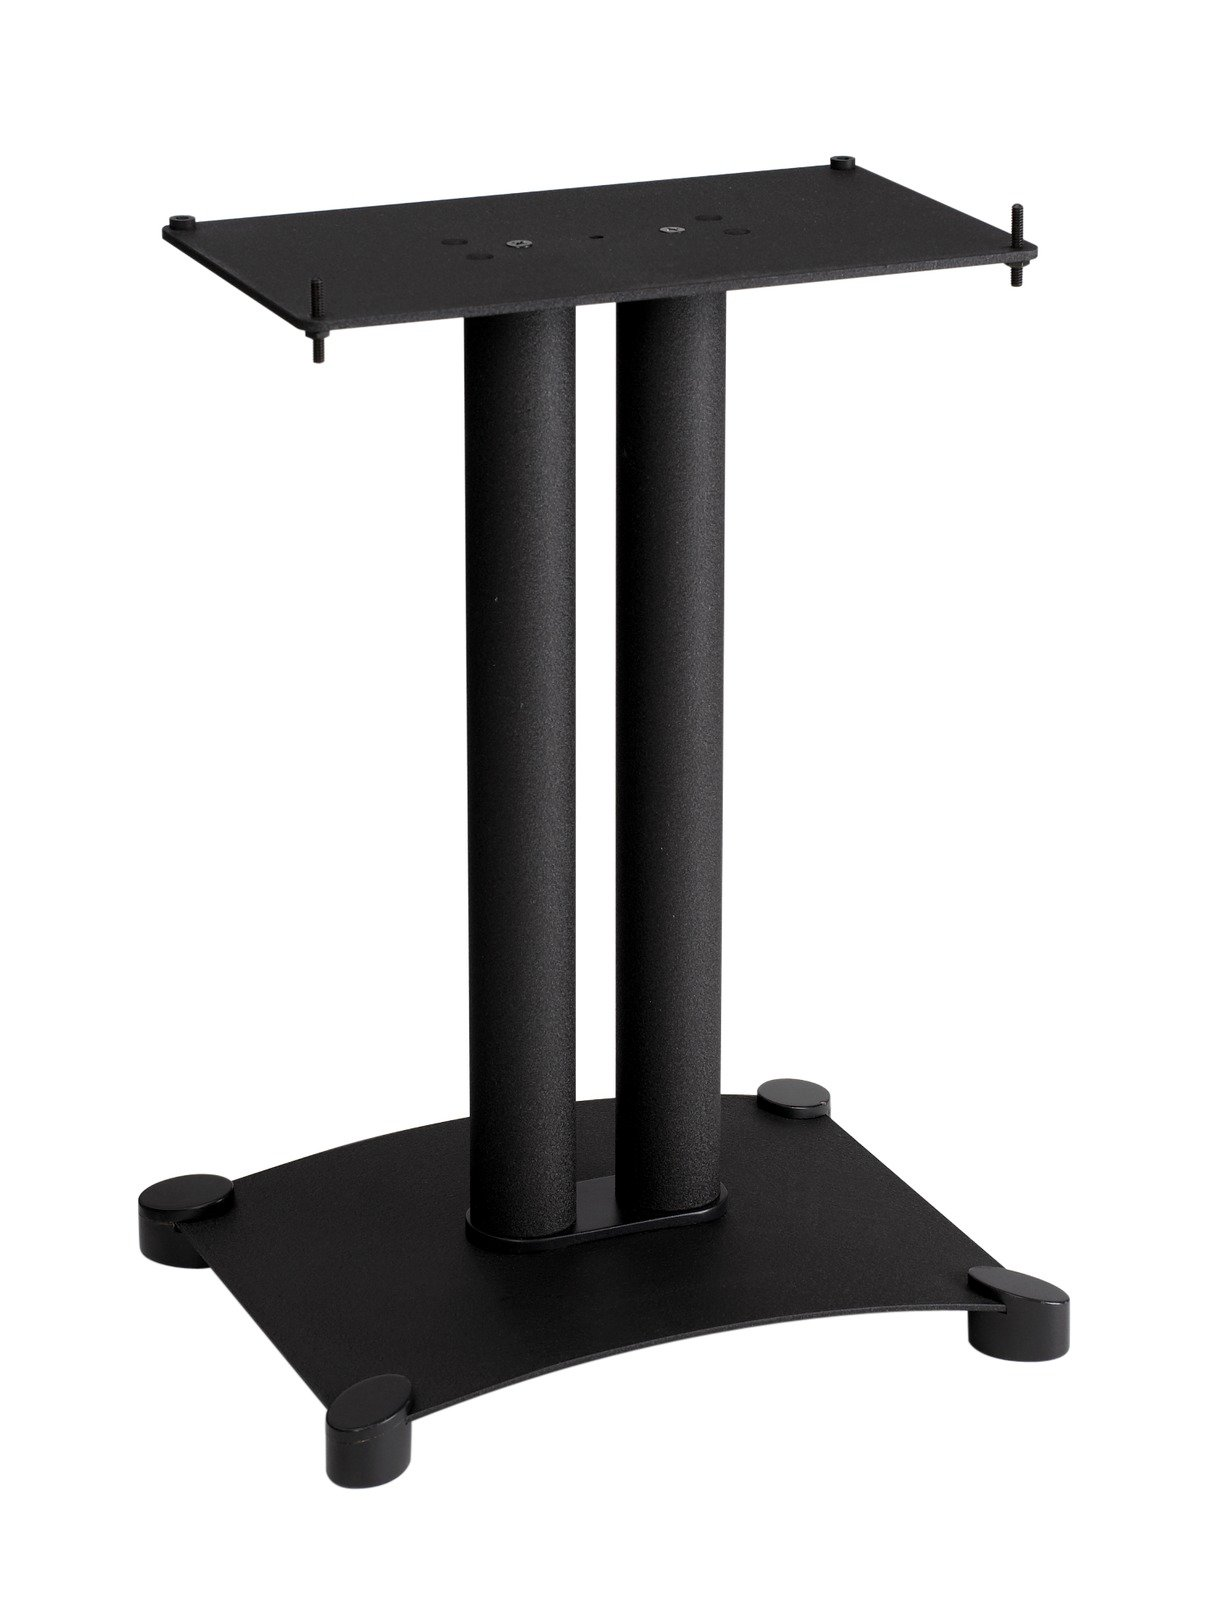 Sanus SFC22-B1 Steel Series 22'' Speaker Stand for Center Channel Speakers Black by Sanus